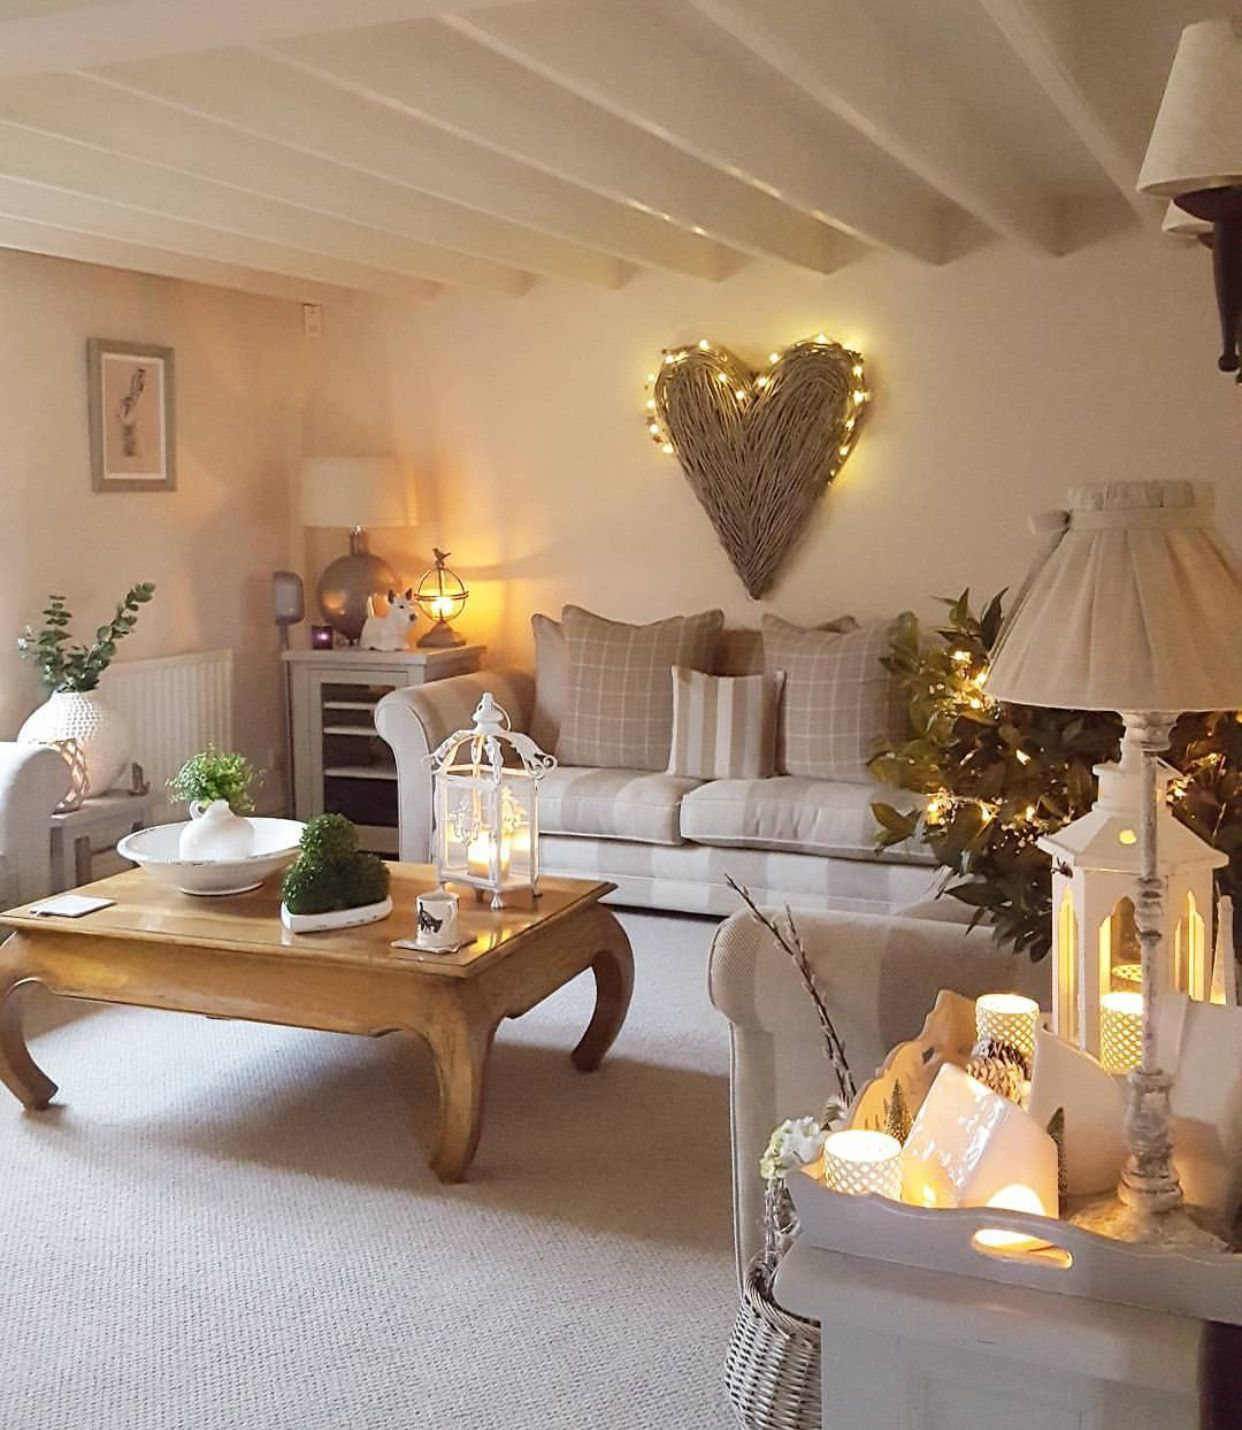 Cozy Home Decoration: Beige Neutral Home Decor Decorating / Lights /heart Wall